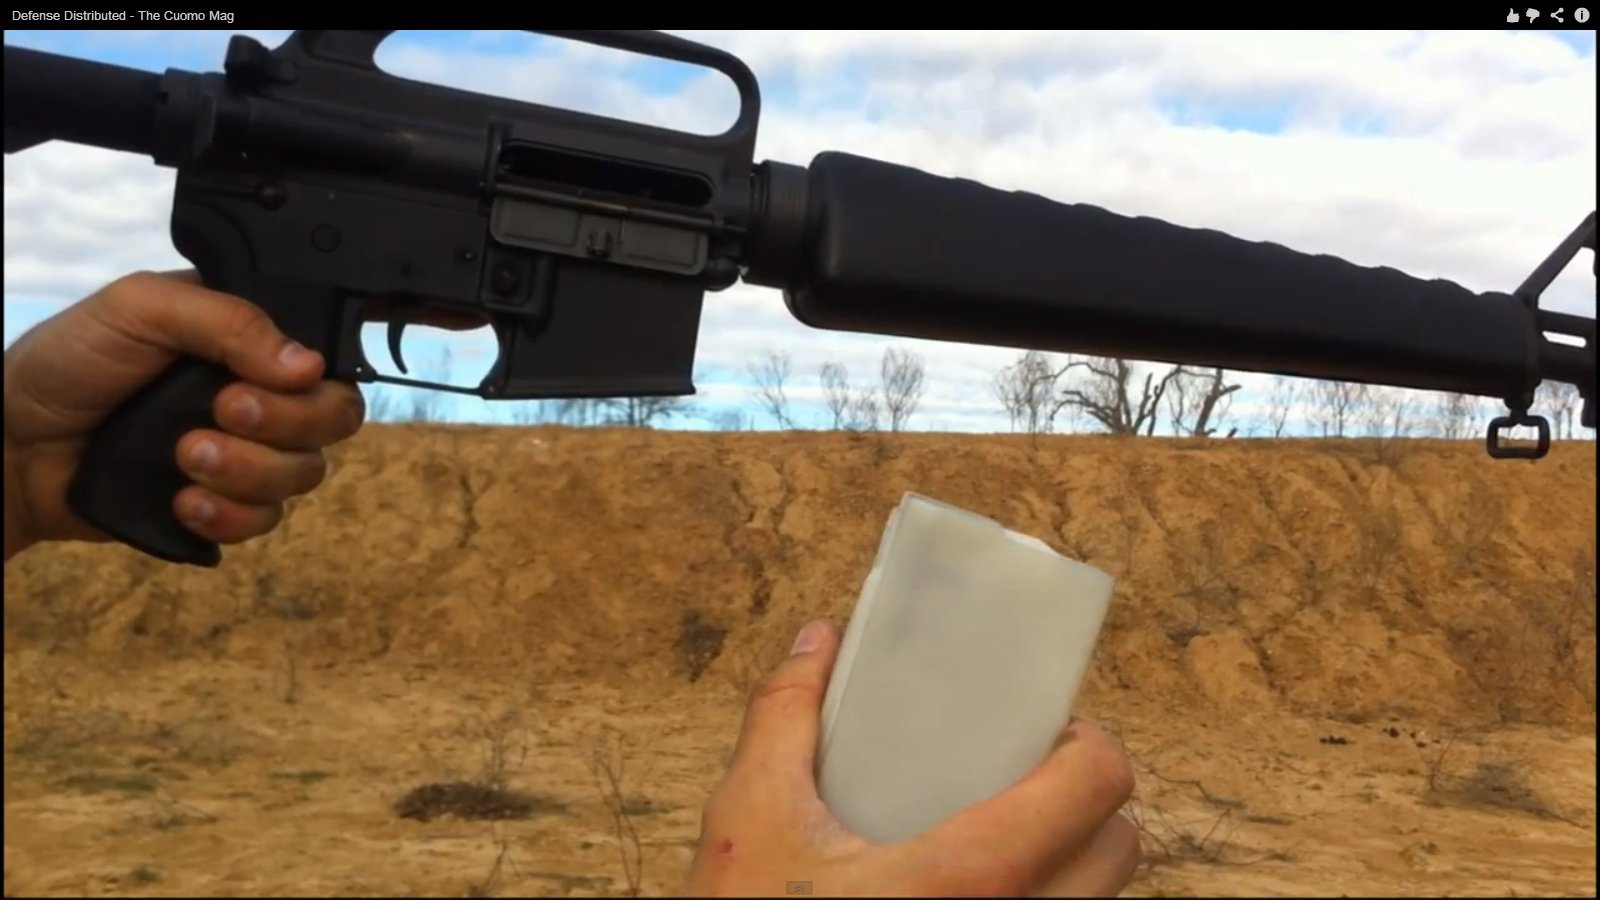 """Defense Distributed (DefDist) Product-Improved 3D-Printed Polymer 30-Round AR-15 Magazine: Meet the """"Cuomo Mag"""", Governor Cuomo"""